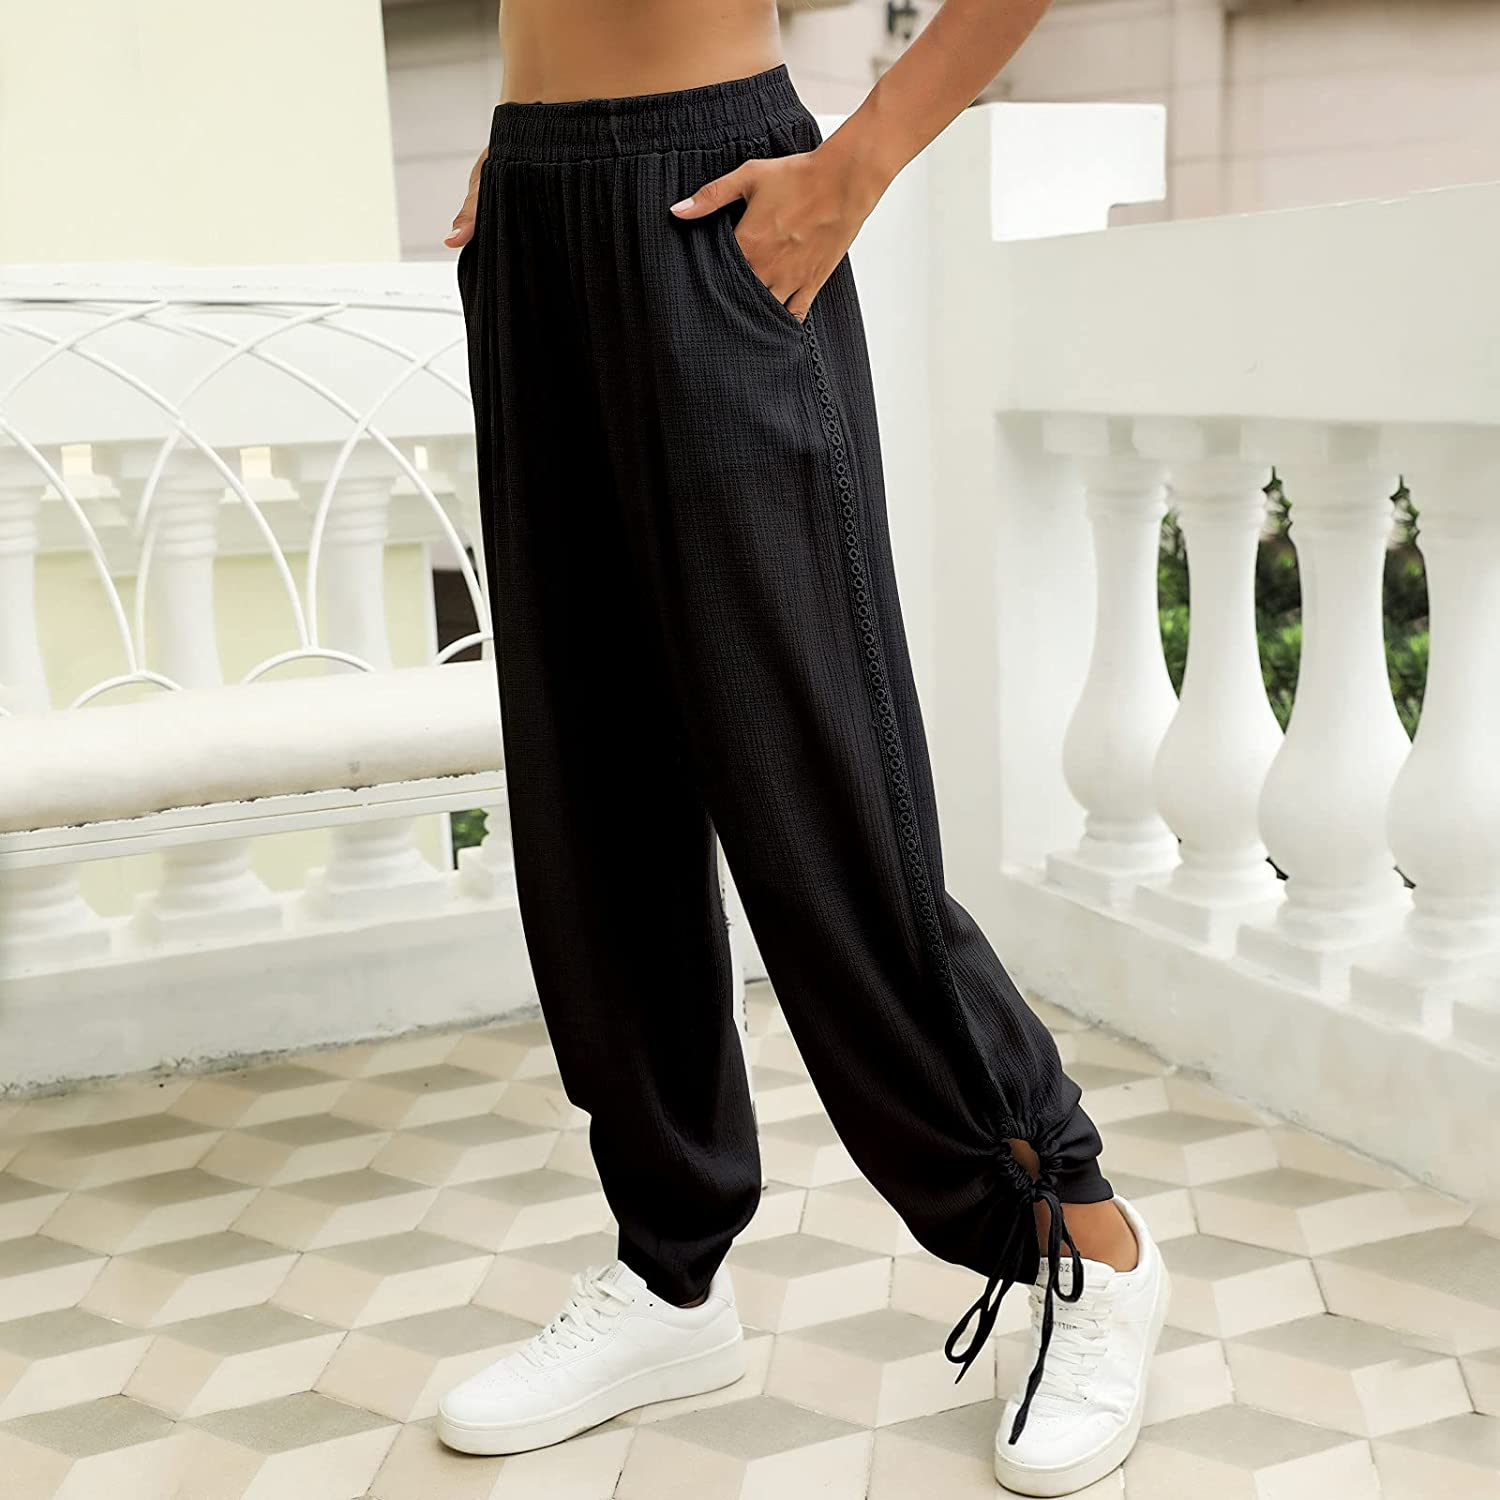 Palazzo Pants for Women High Waist Wide Leg Pants Casual Loose Lounge Pants with Pockets Plus Size Trousers